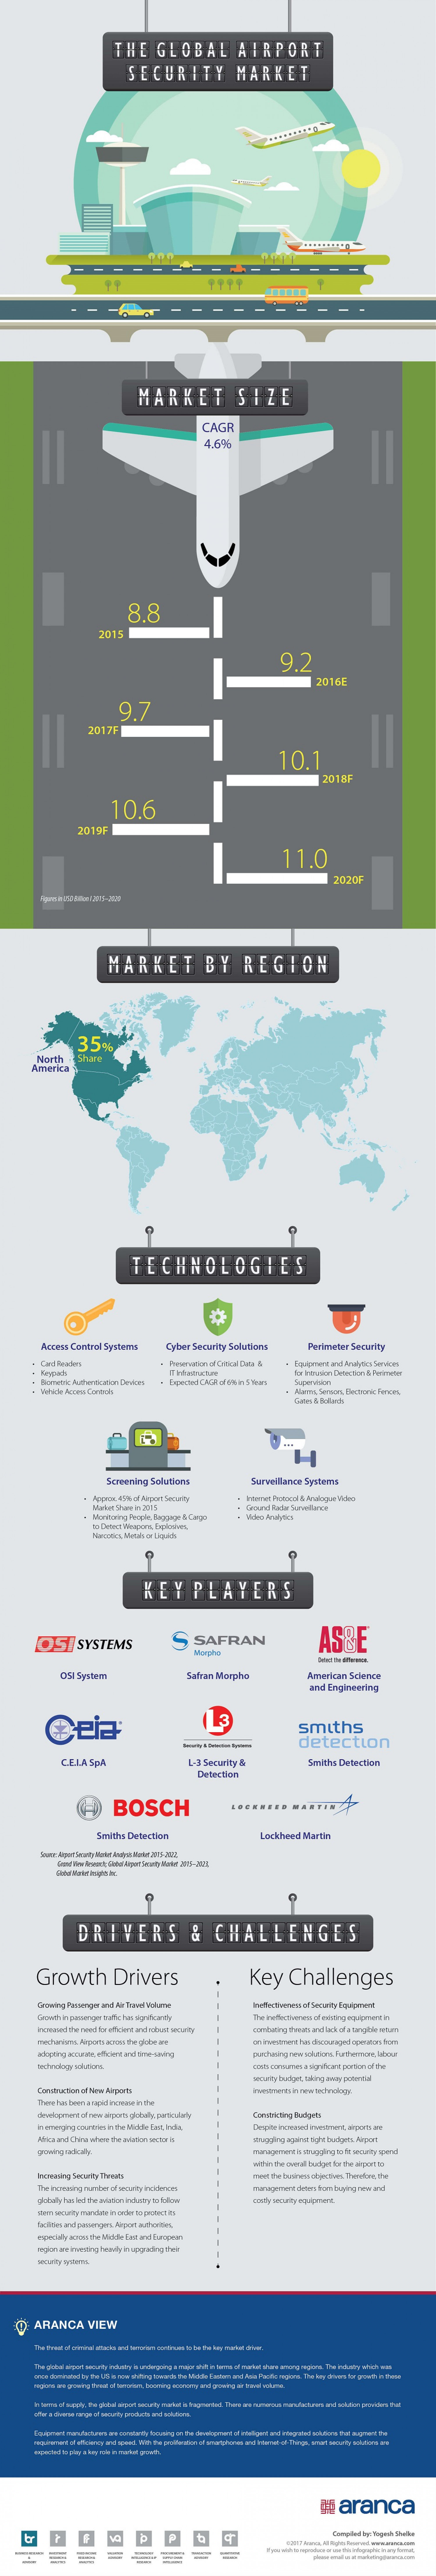 Global Airport Security Market Infographic